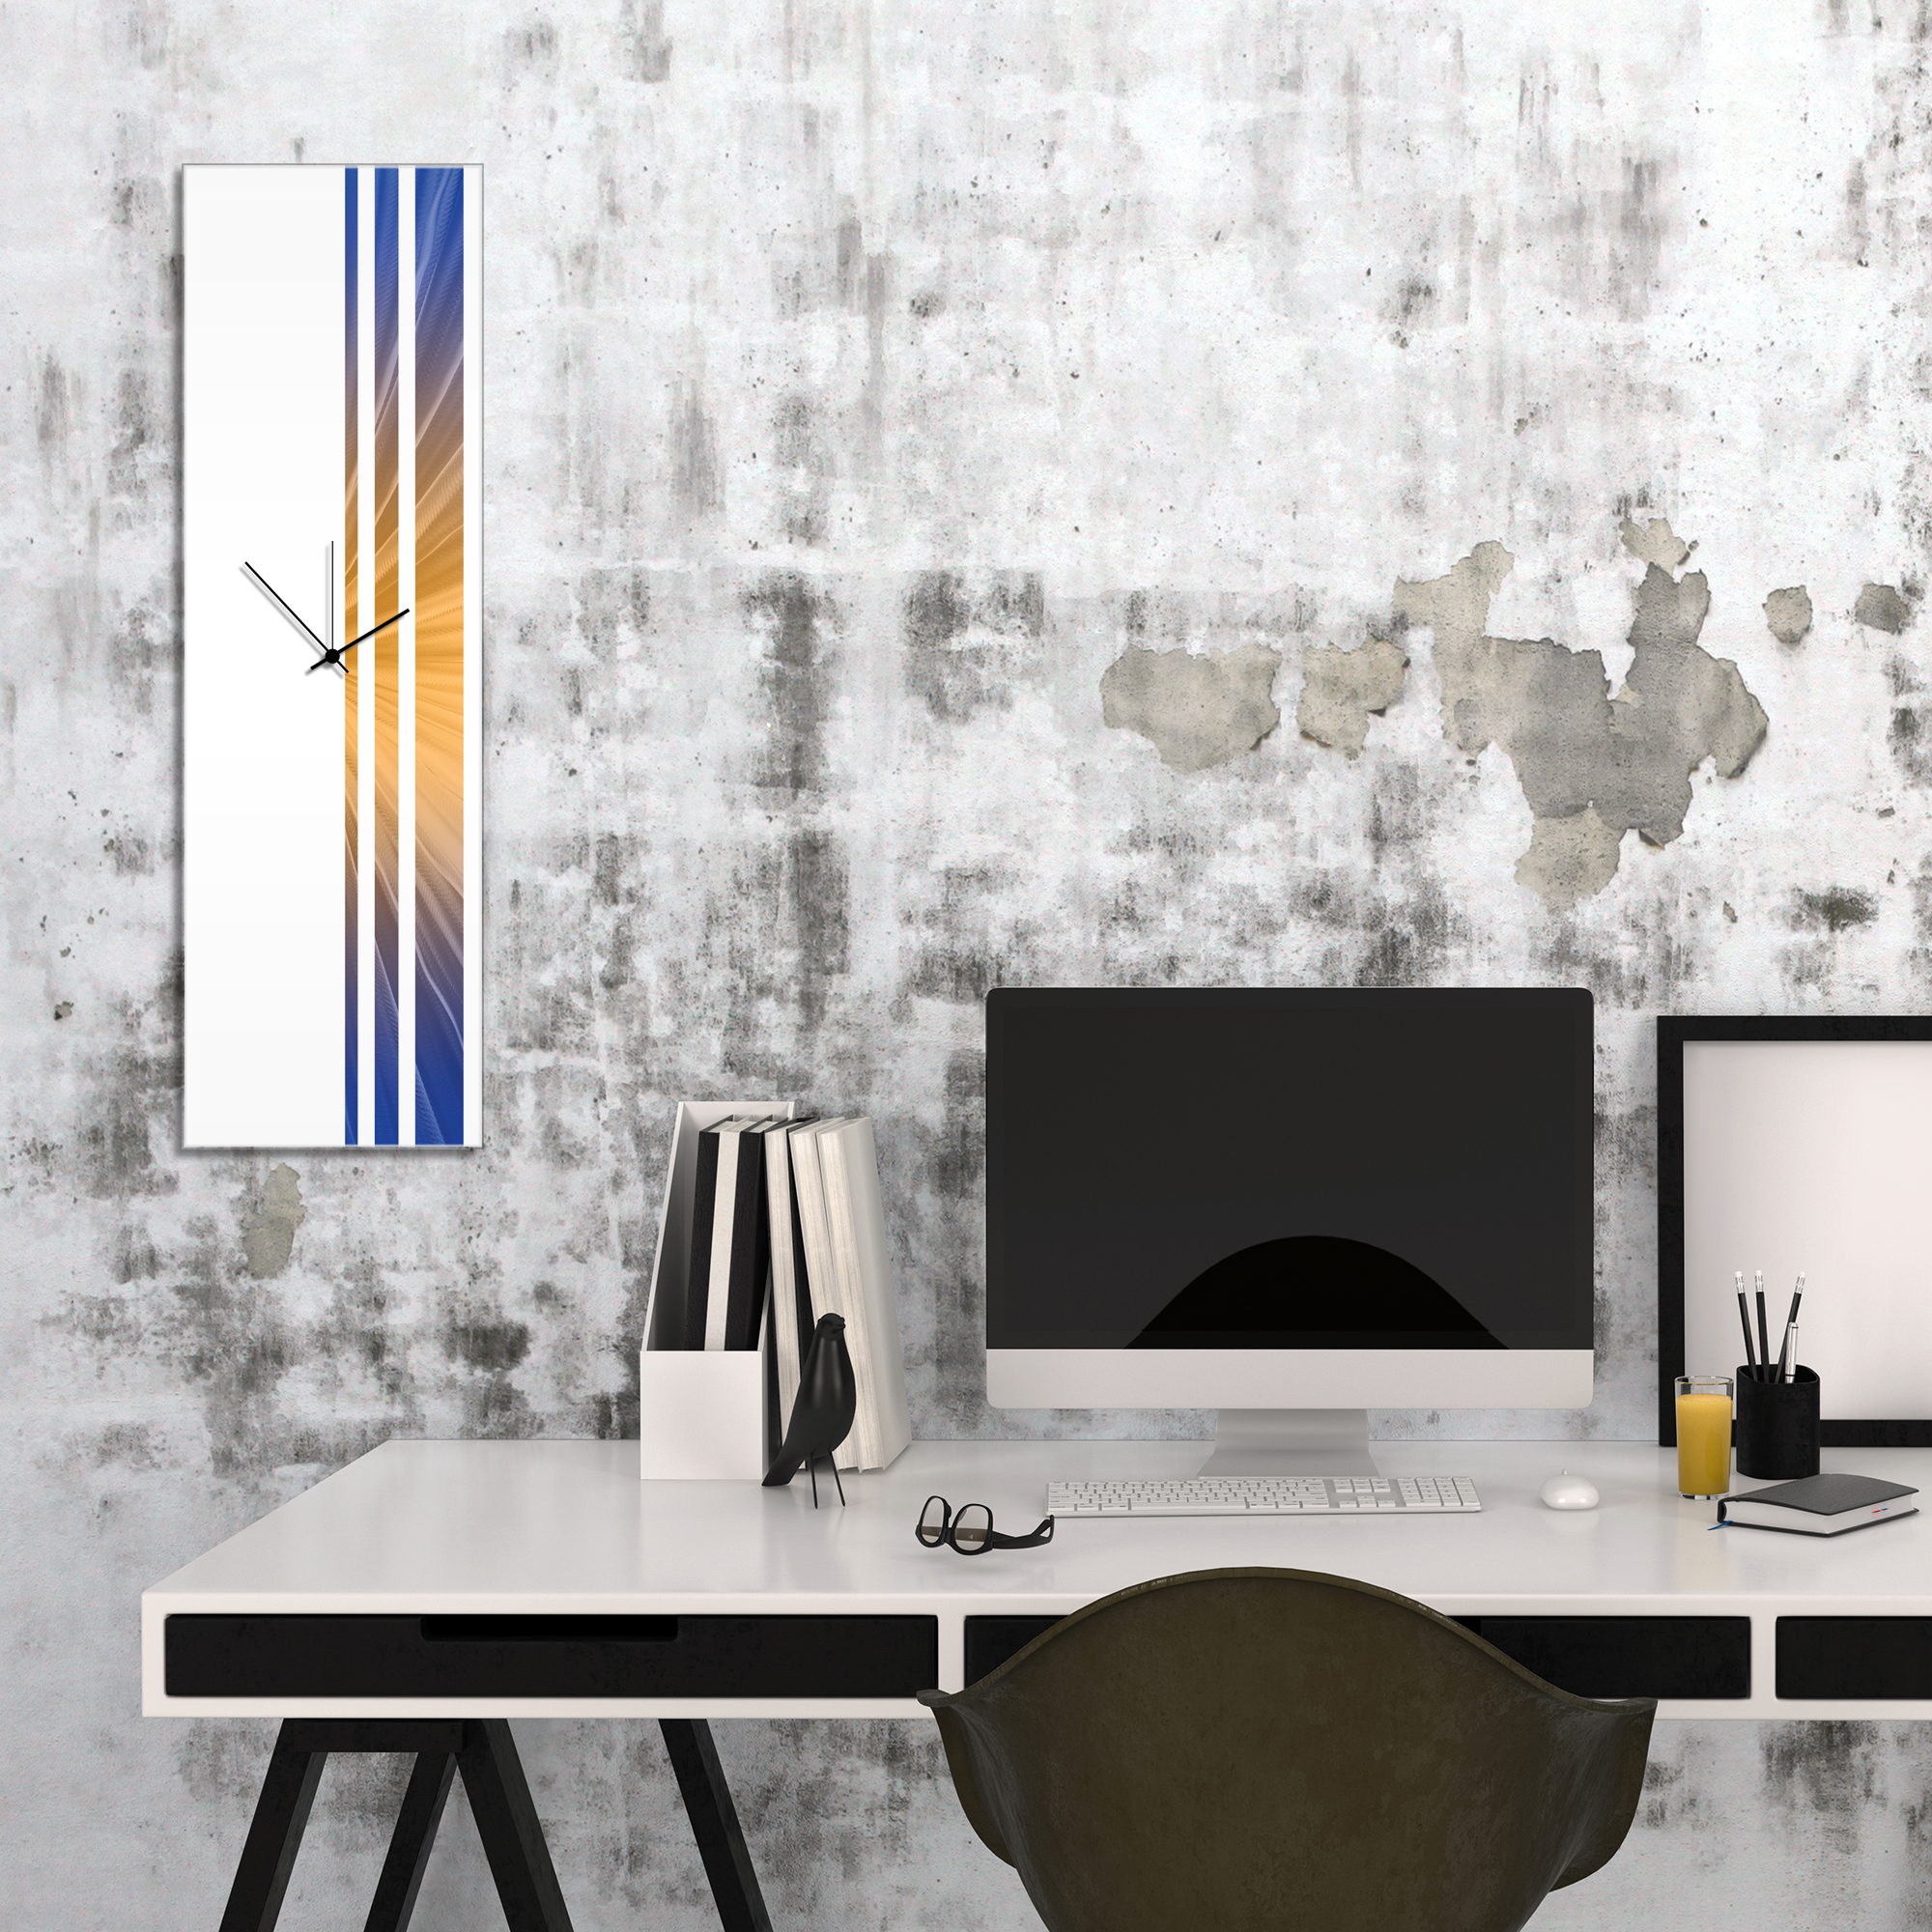 Candlelight Triple Stripe Clock by Adam Schwoeppe Large Modern Clock on Acrylic - Alternate View 1